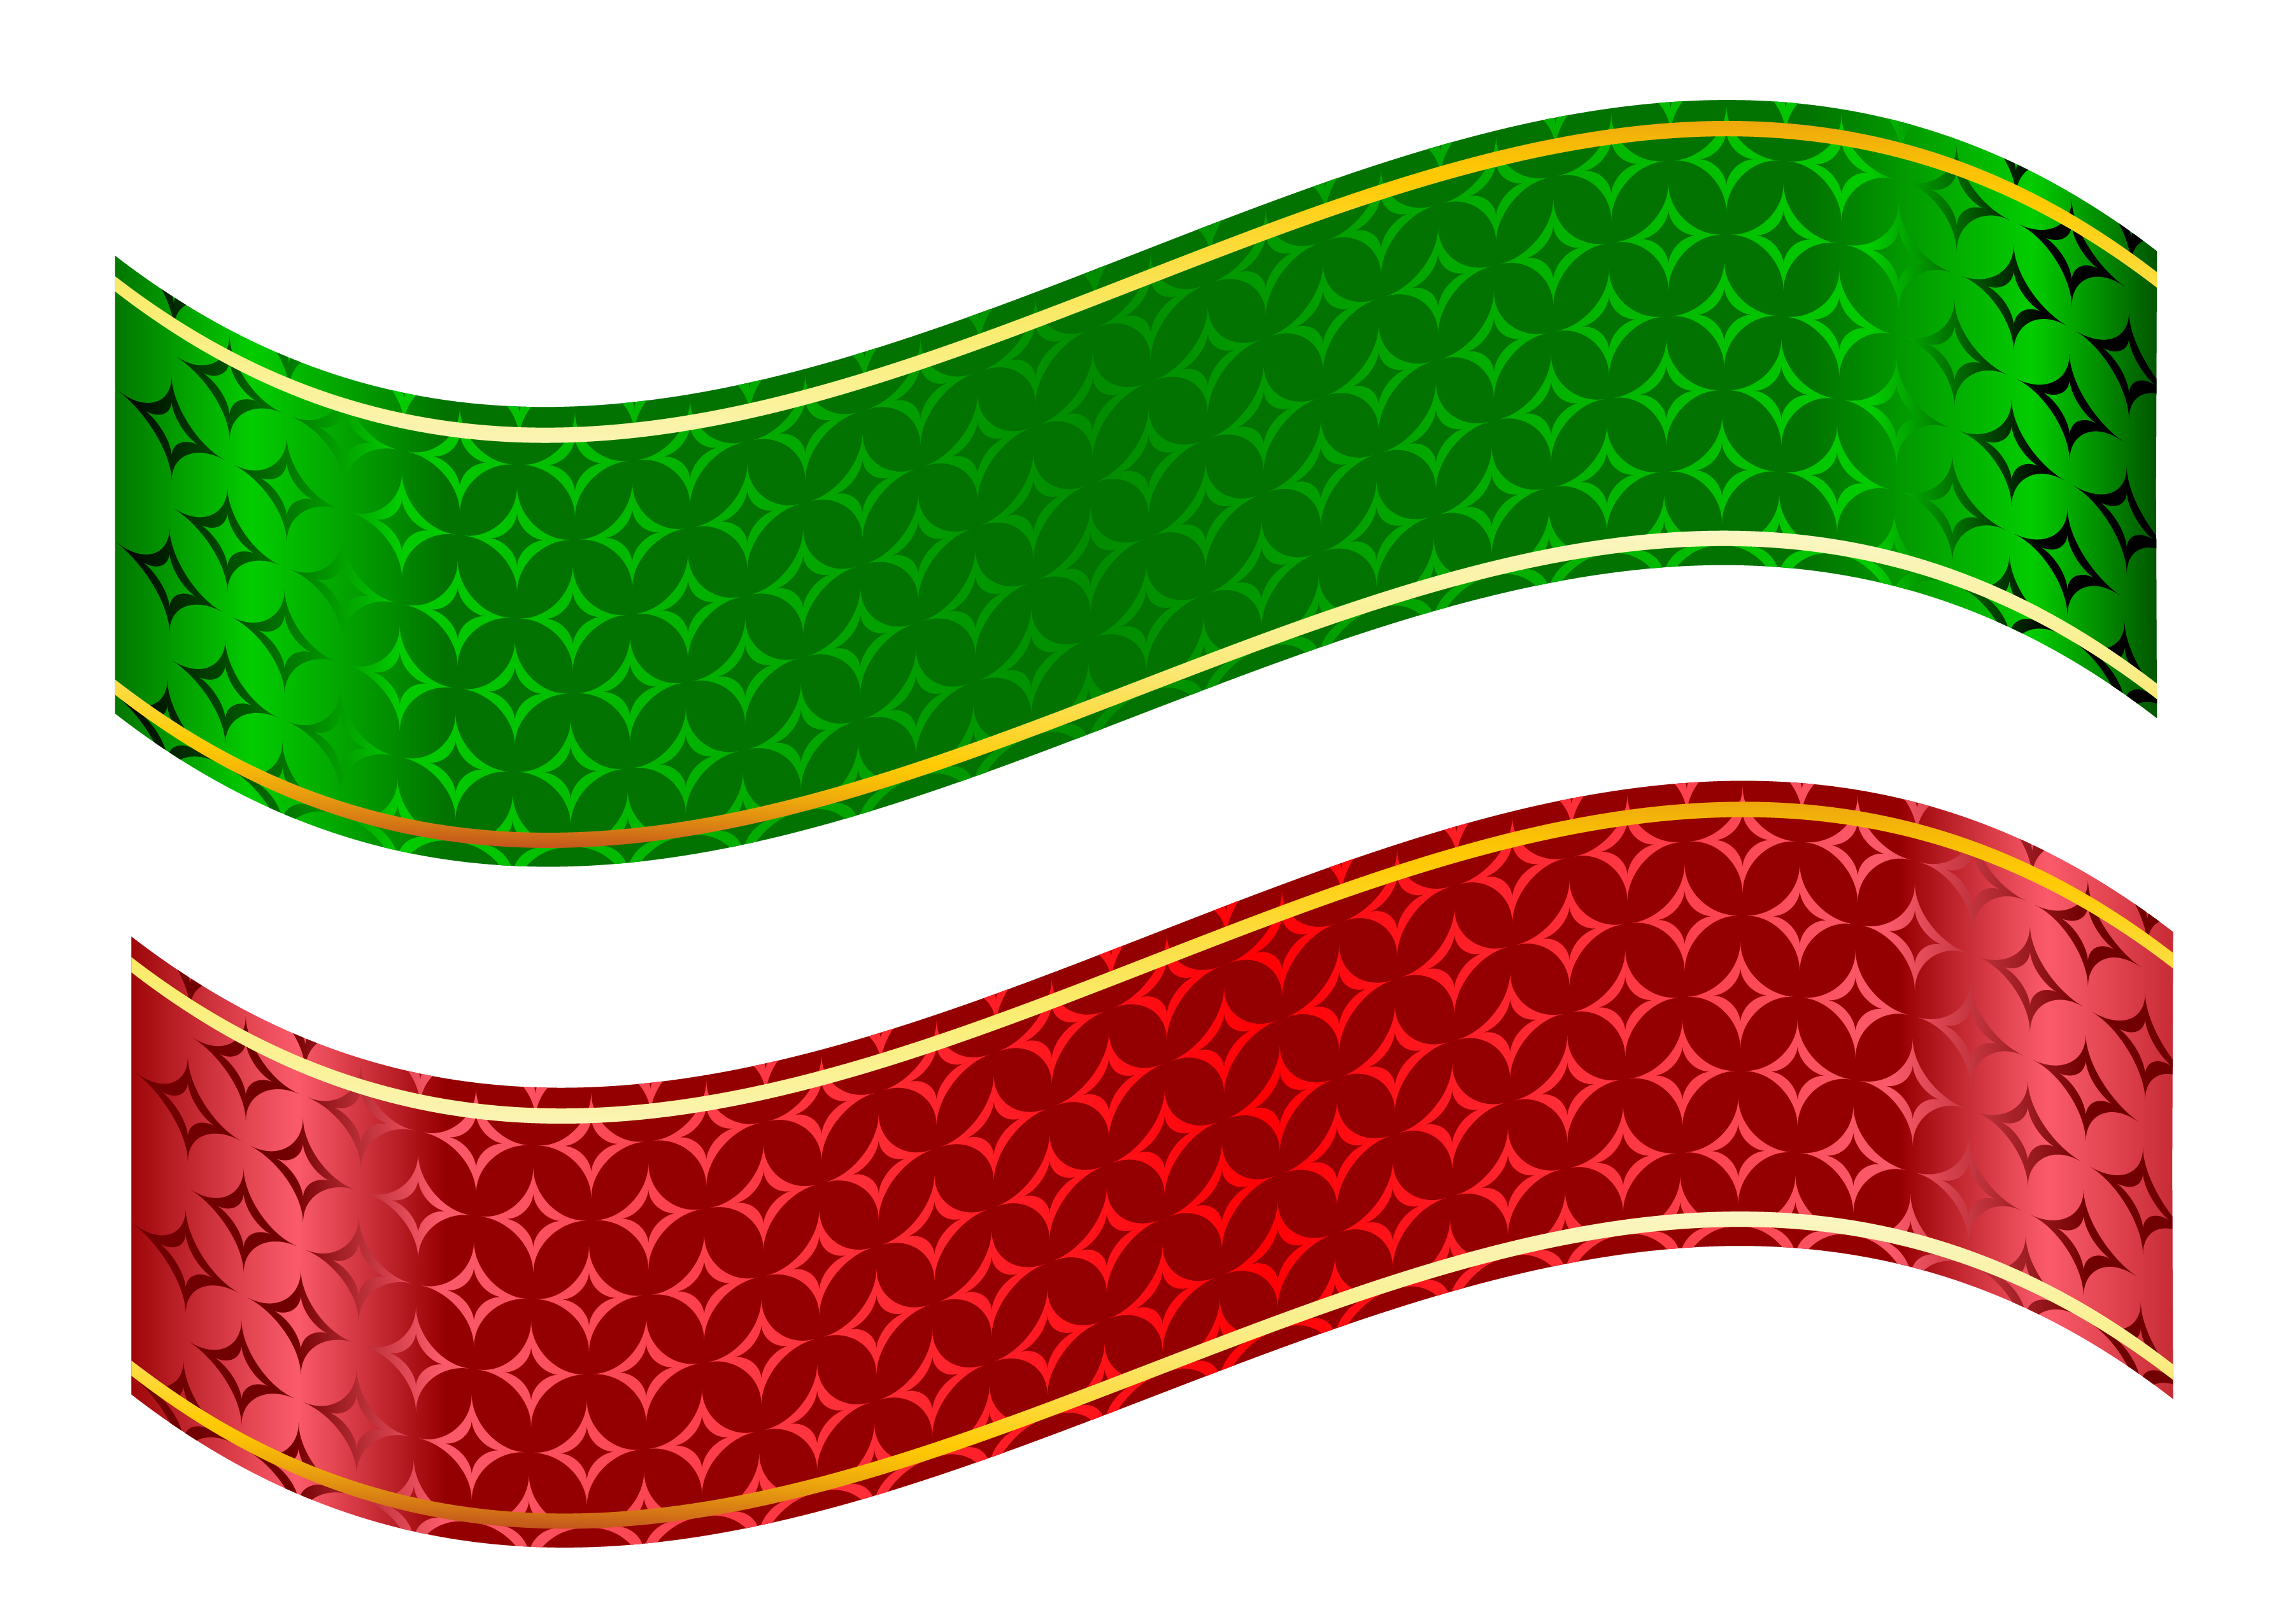 clipart library stock Strip clipart. Red and green set